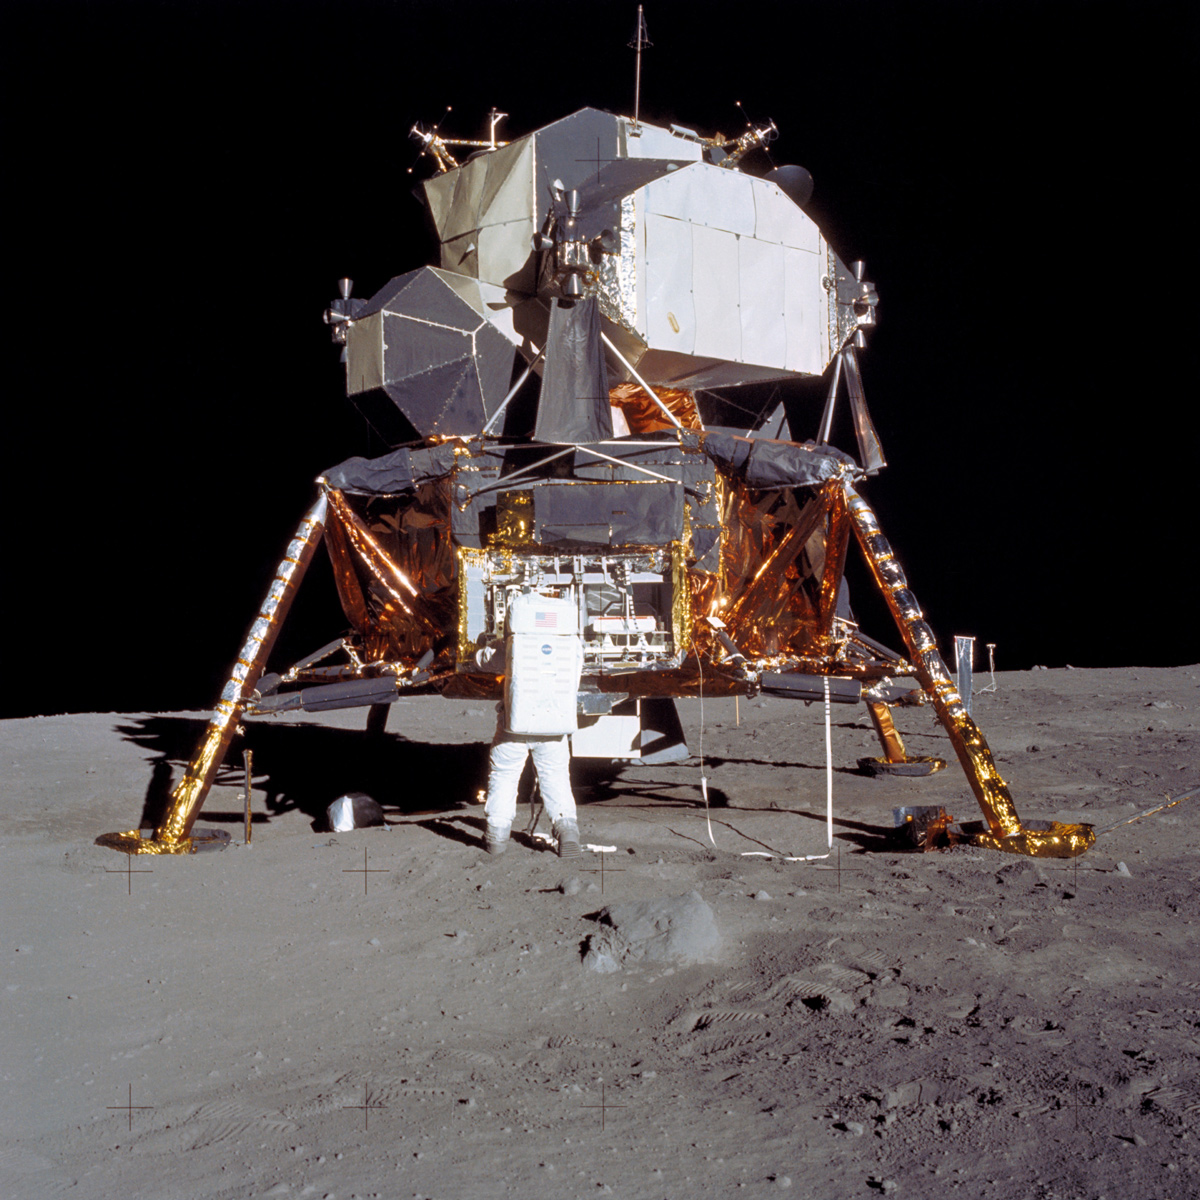 Lunar module on surface of moon